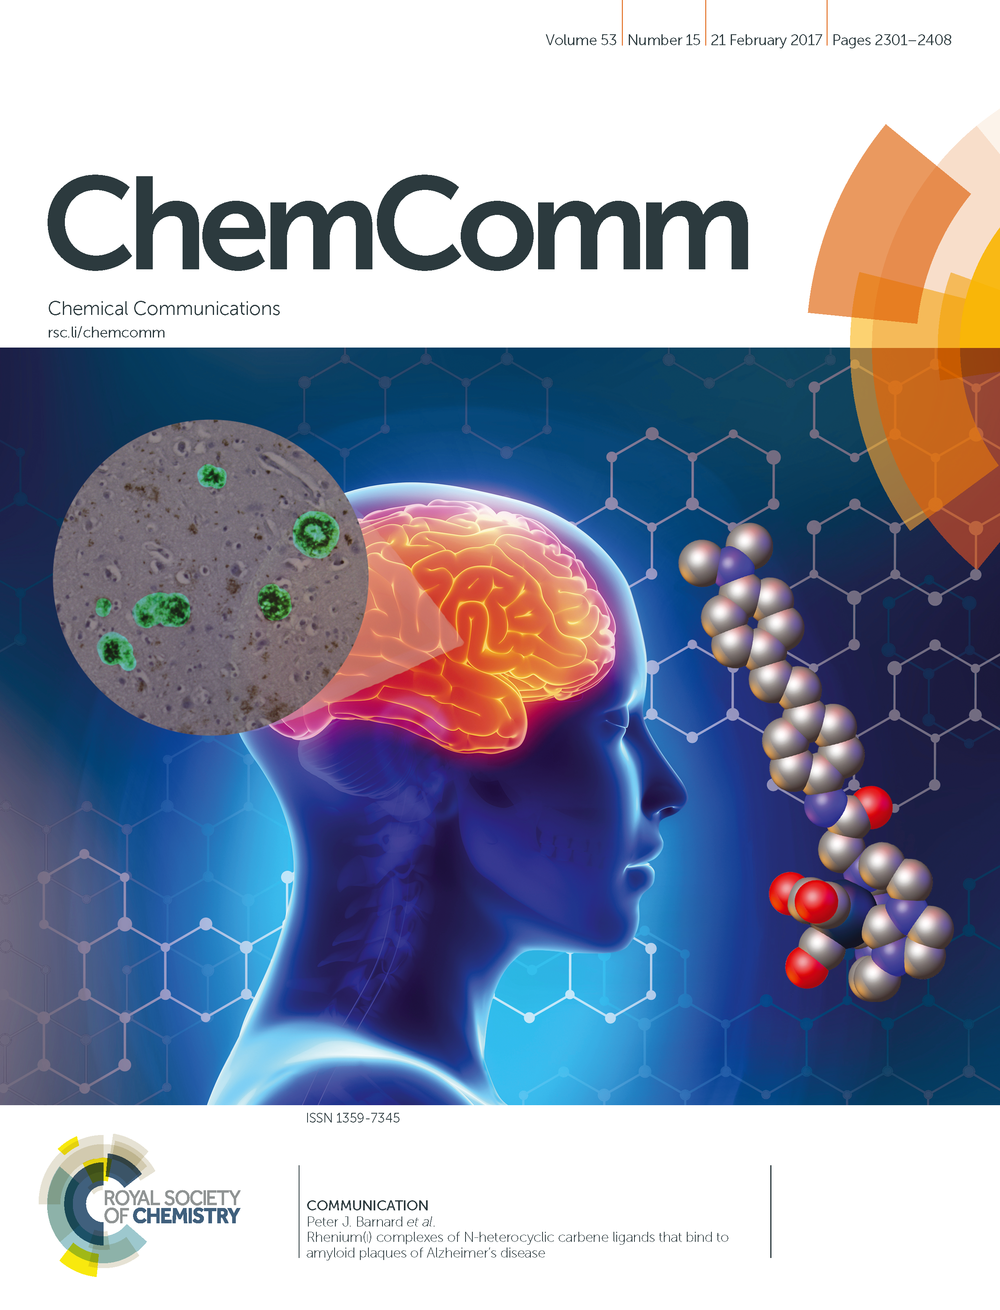 - Cover art features Alzheimer's disease research by Dr Peter Barnard, La Trobe University.